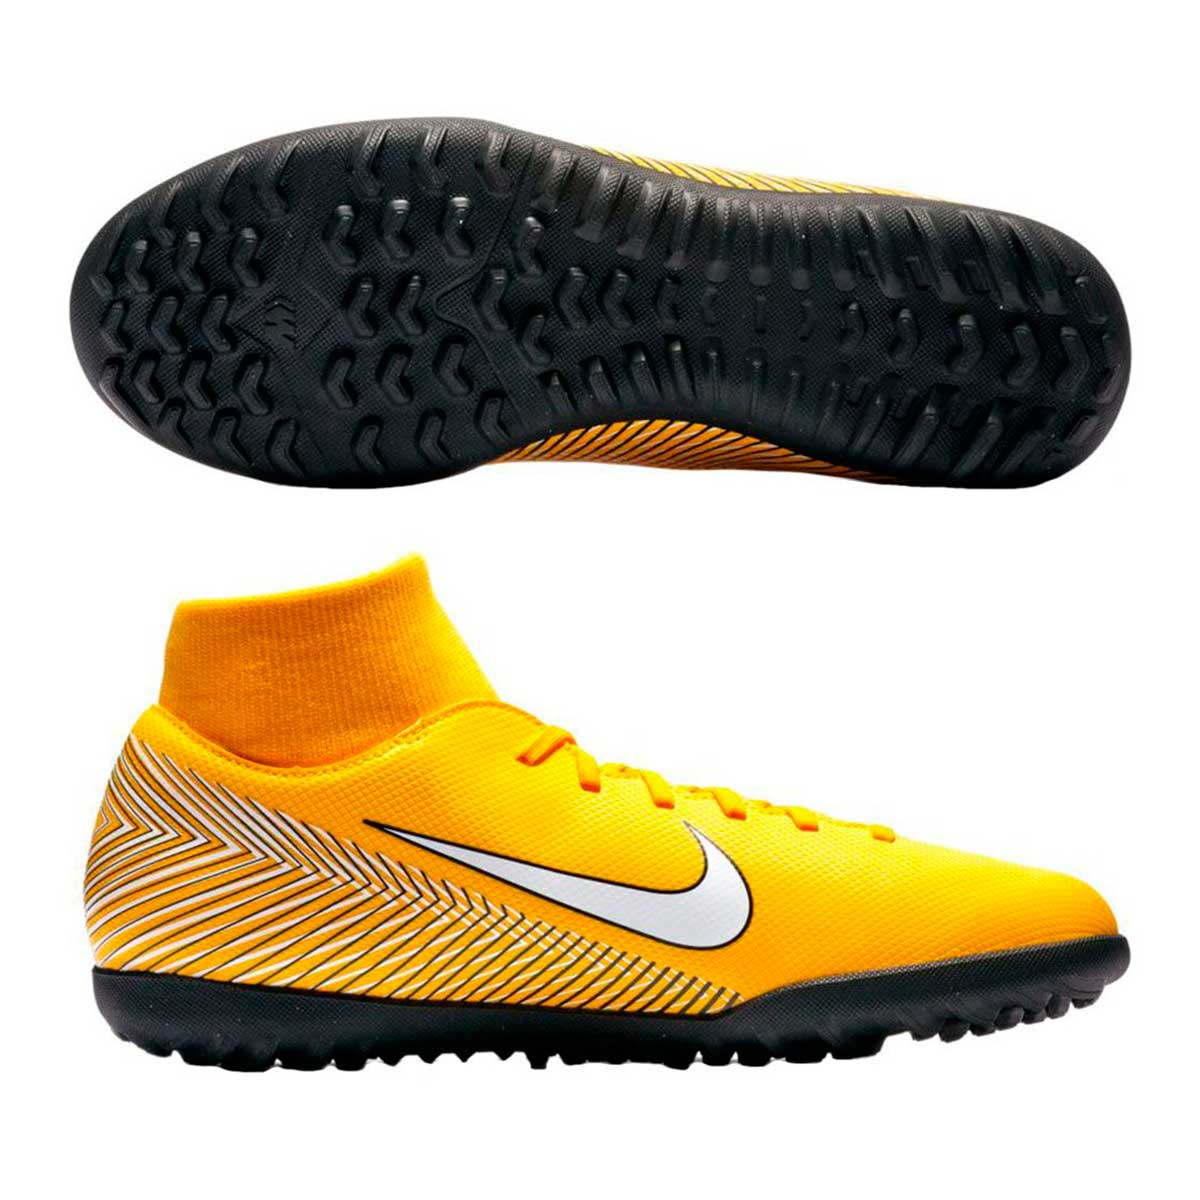 6f8c3eea71 Chuteira Nike Mercurial SuperflyX 6 Club Neymar TF